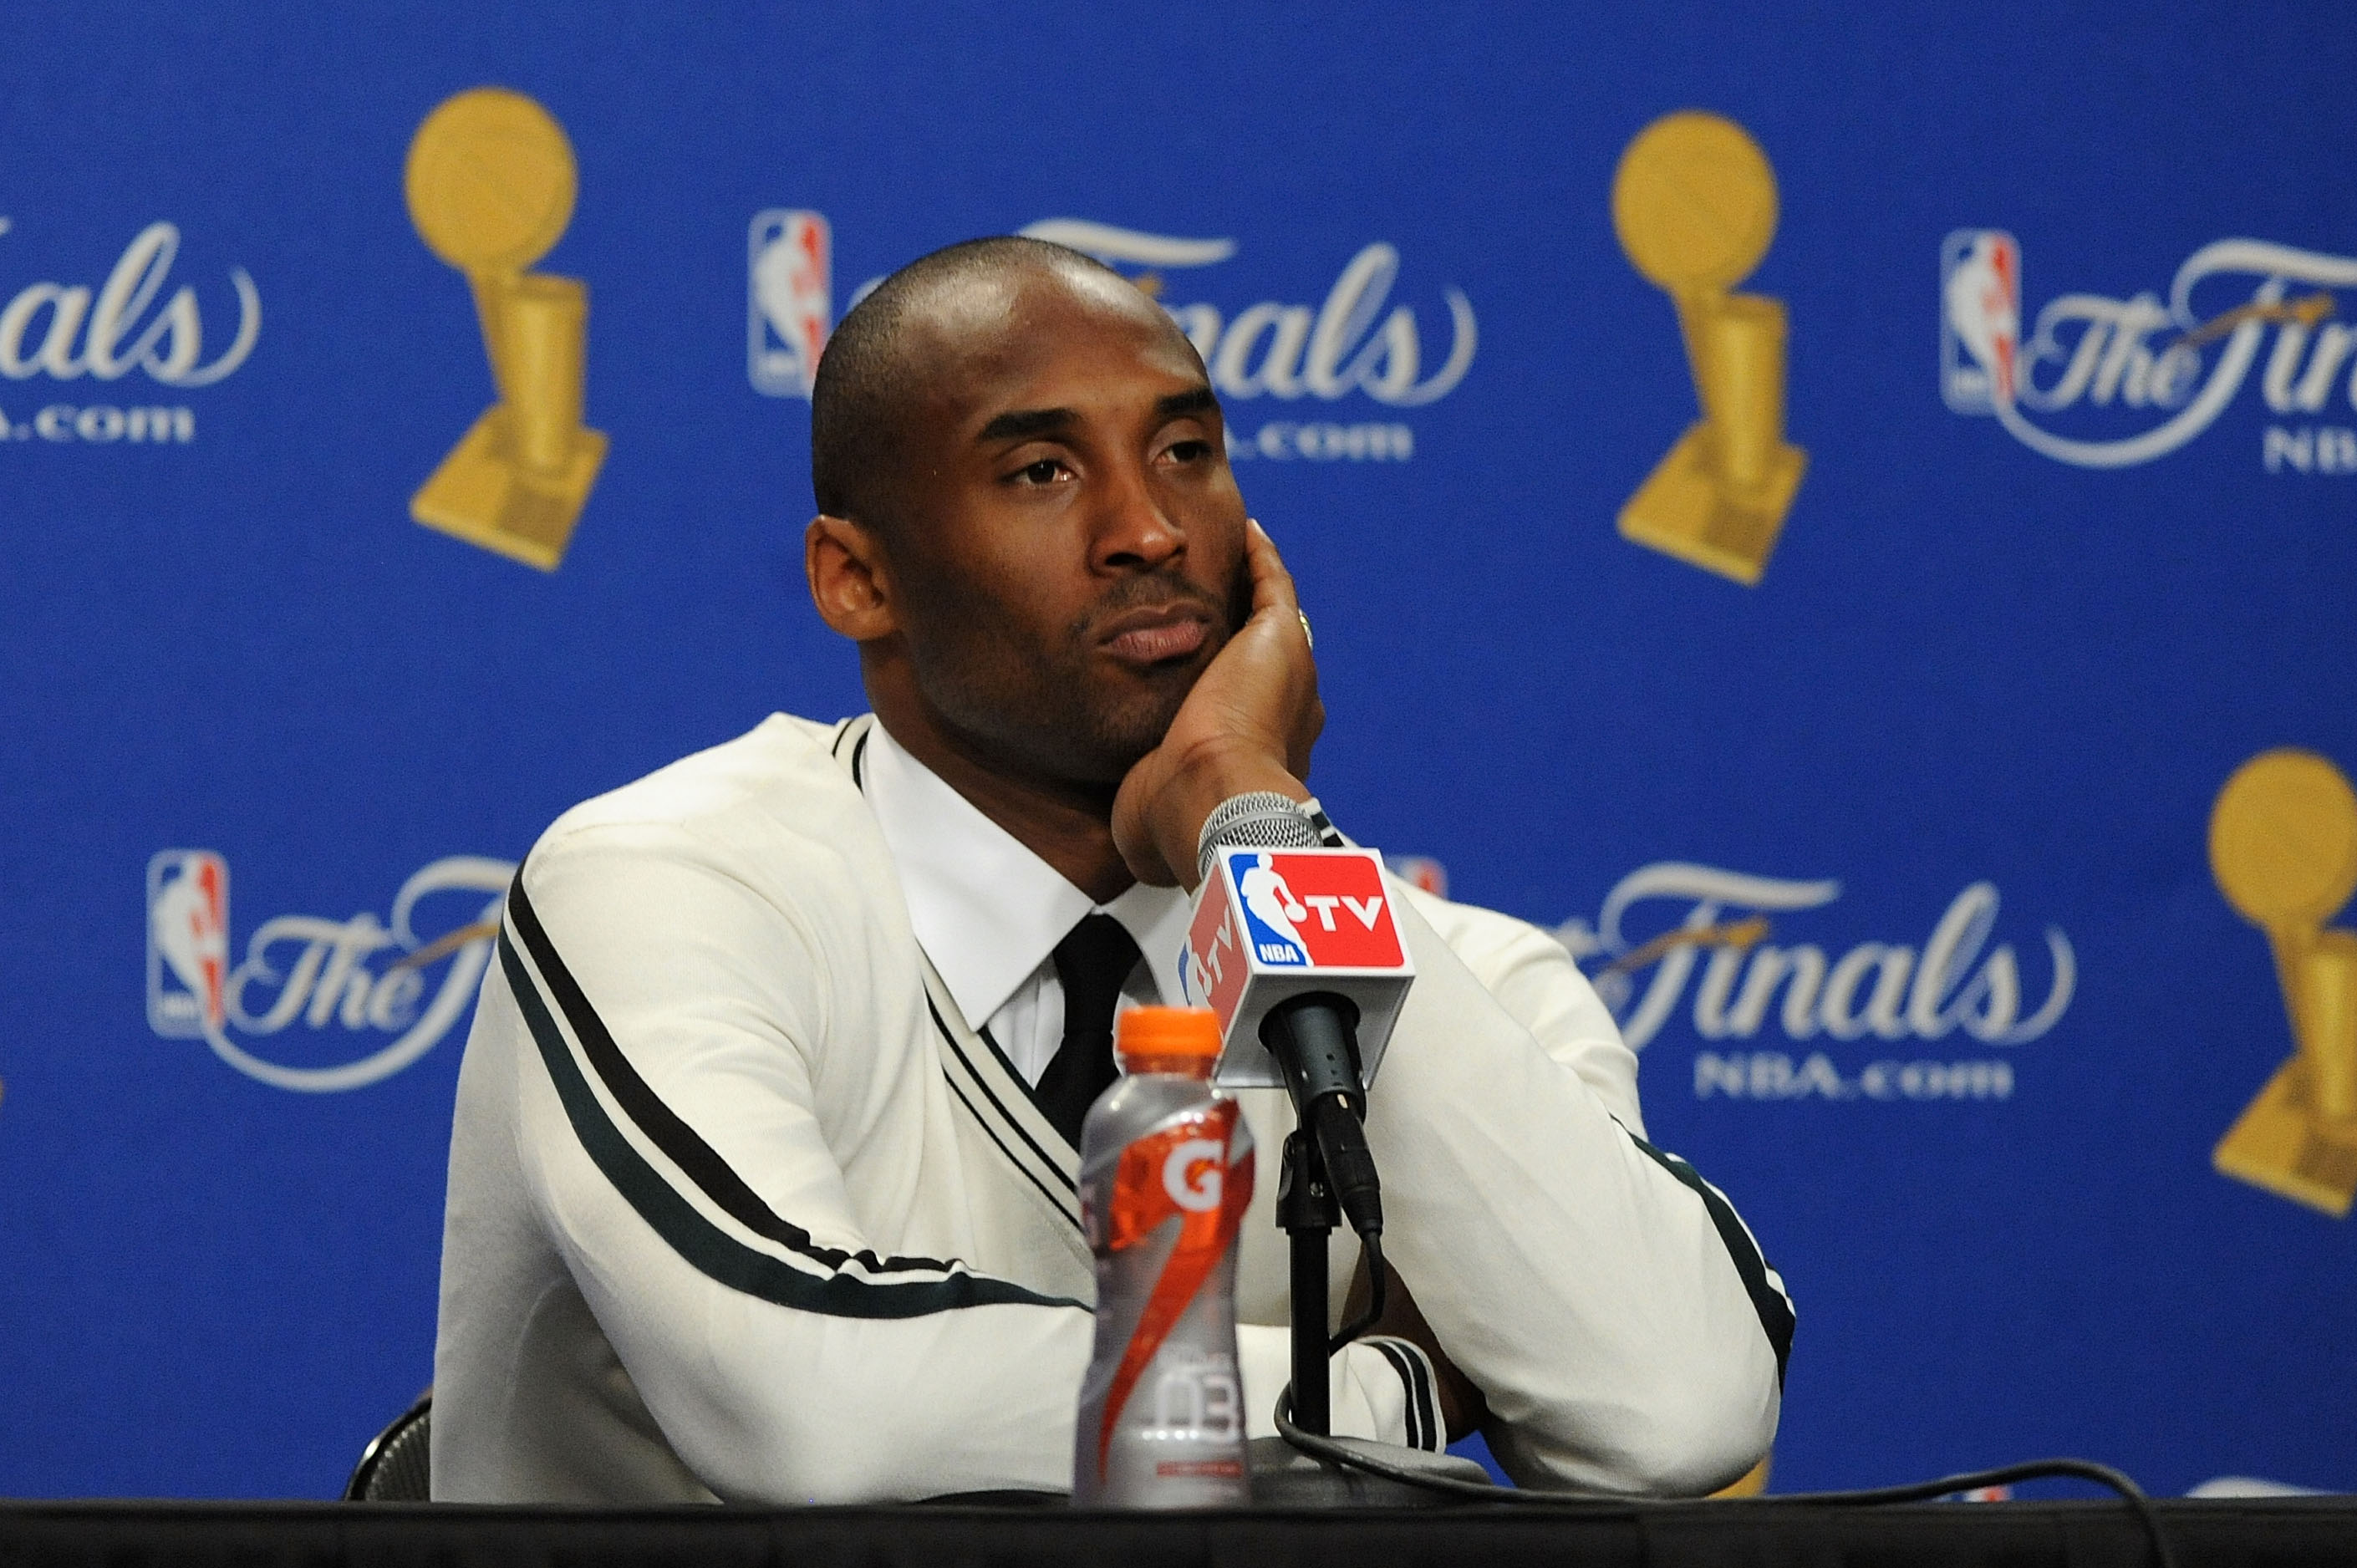 LOS ANGELES, CA - JUNE 06:  Kobe Bryant #24 of the Los Angeles Lakers reacts as he anwers questions from the media durinng the post game press conference after the Lakers lost 103-94 against the Boston Celtics in Game Two of the 2010 NBA Finals at Staples